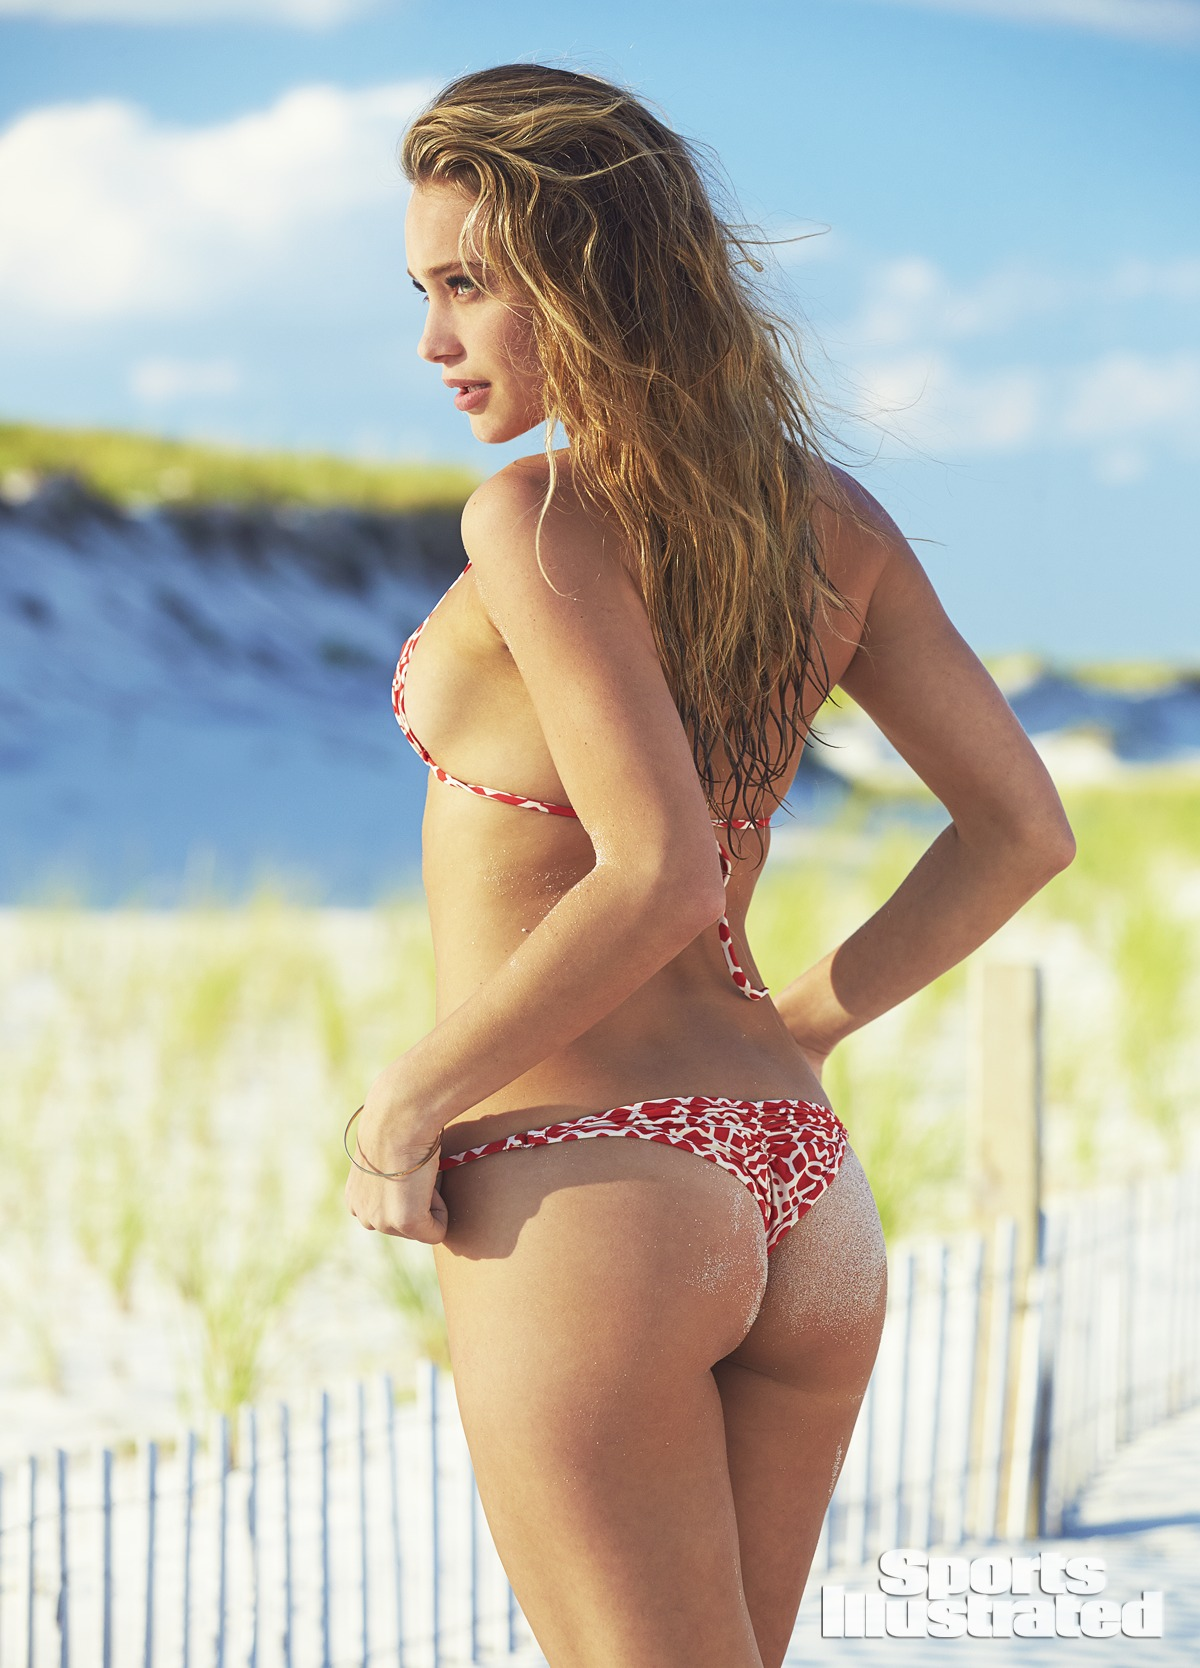 Hannah Davis was photographed by Ben Watts at the Jersey Shore. Swimsuit by TeenyB Bikini Couture.